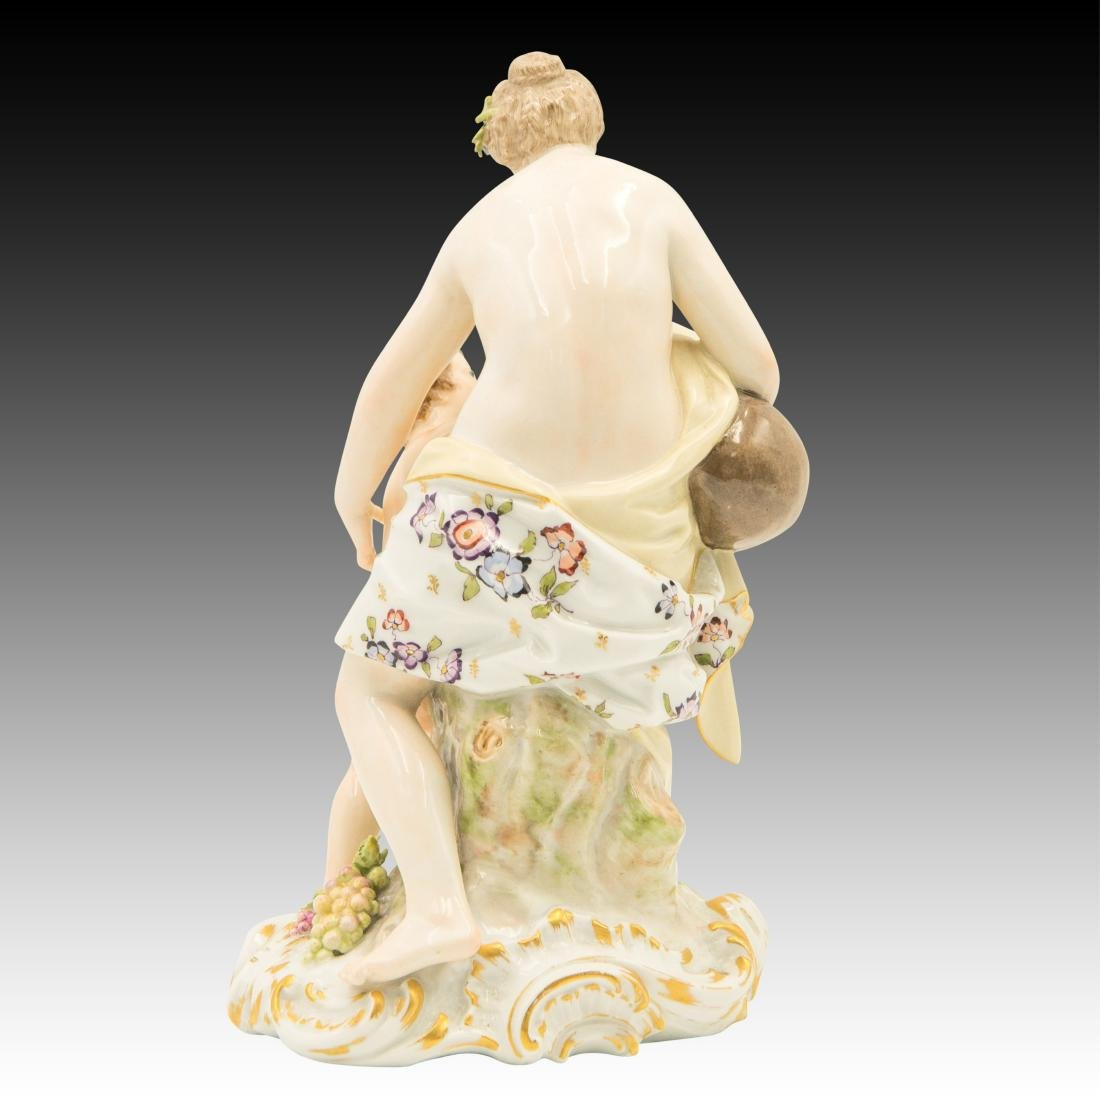 KPM Semi-nude Woman and Child Figurine - 3